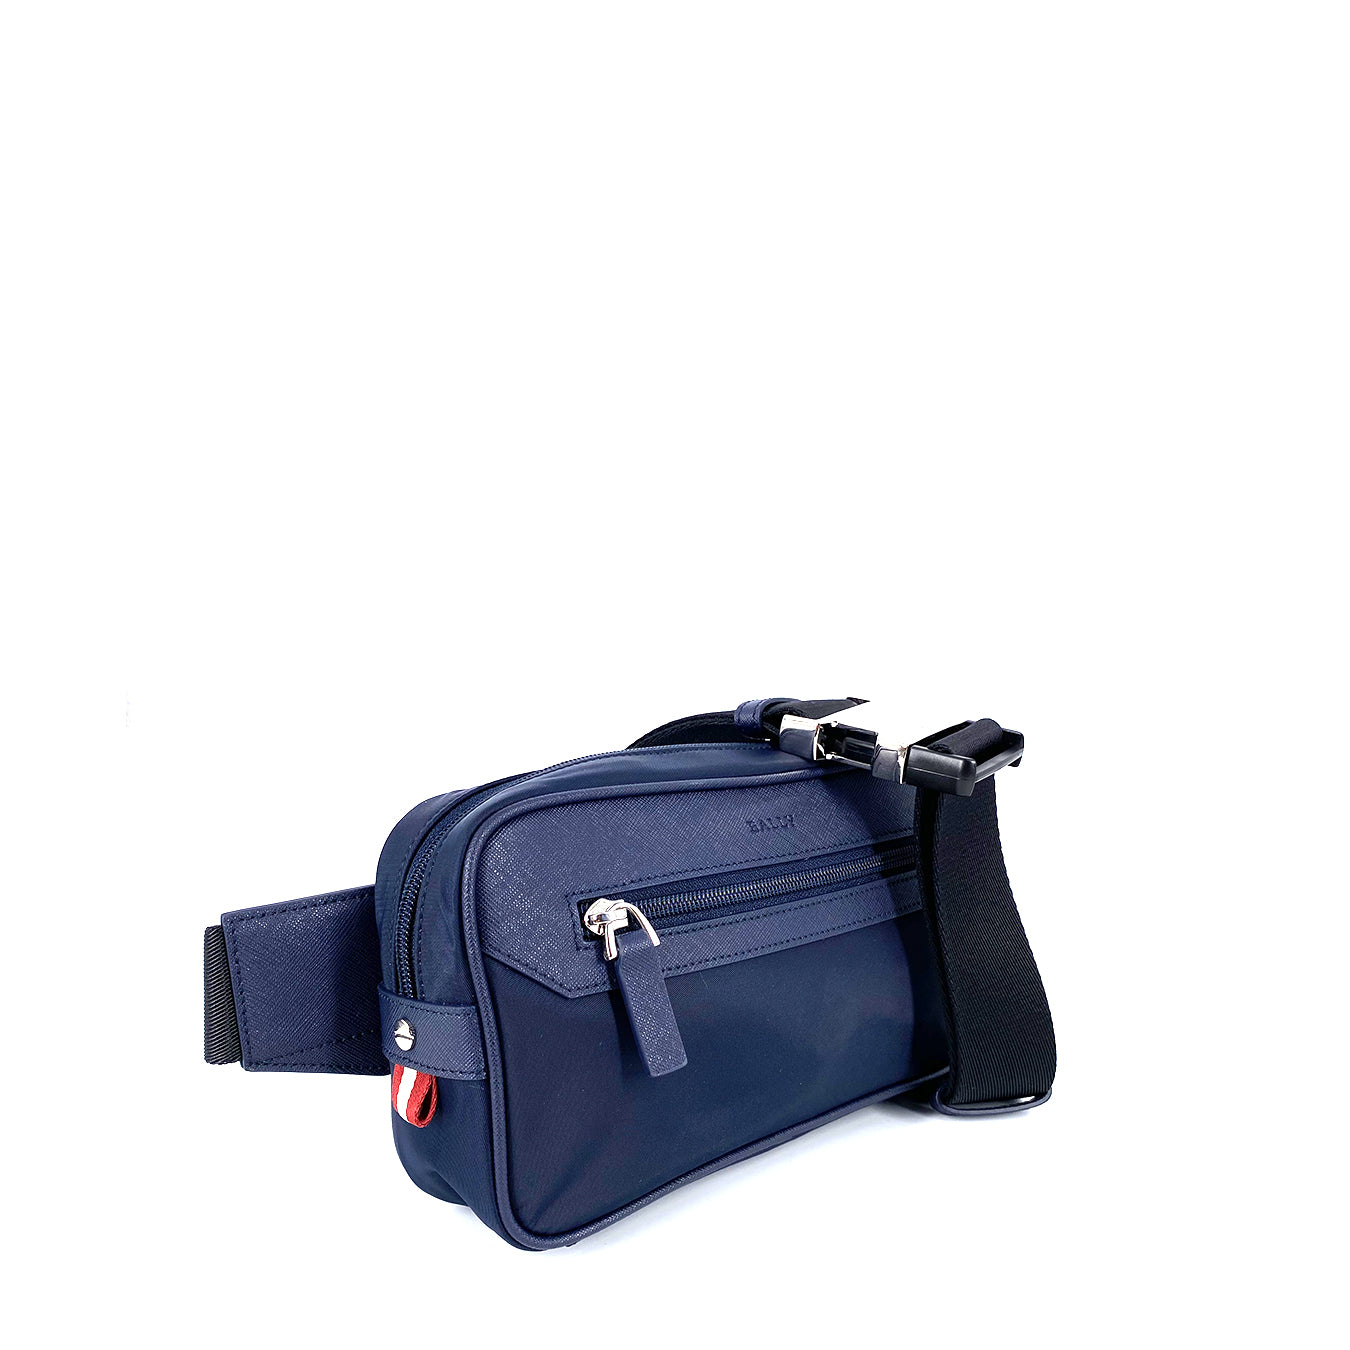 Bally Twister Belt Bag Canvas Navy